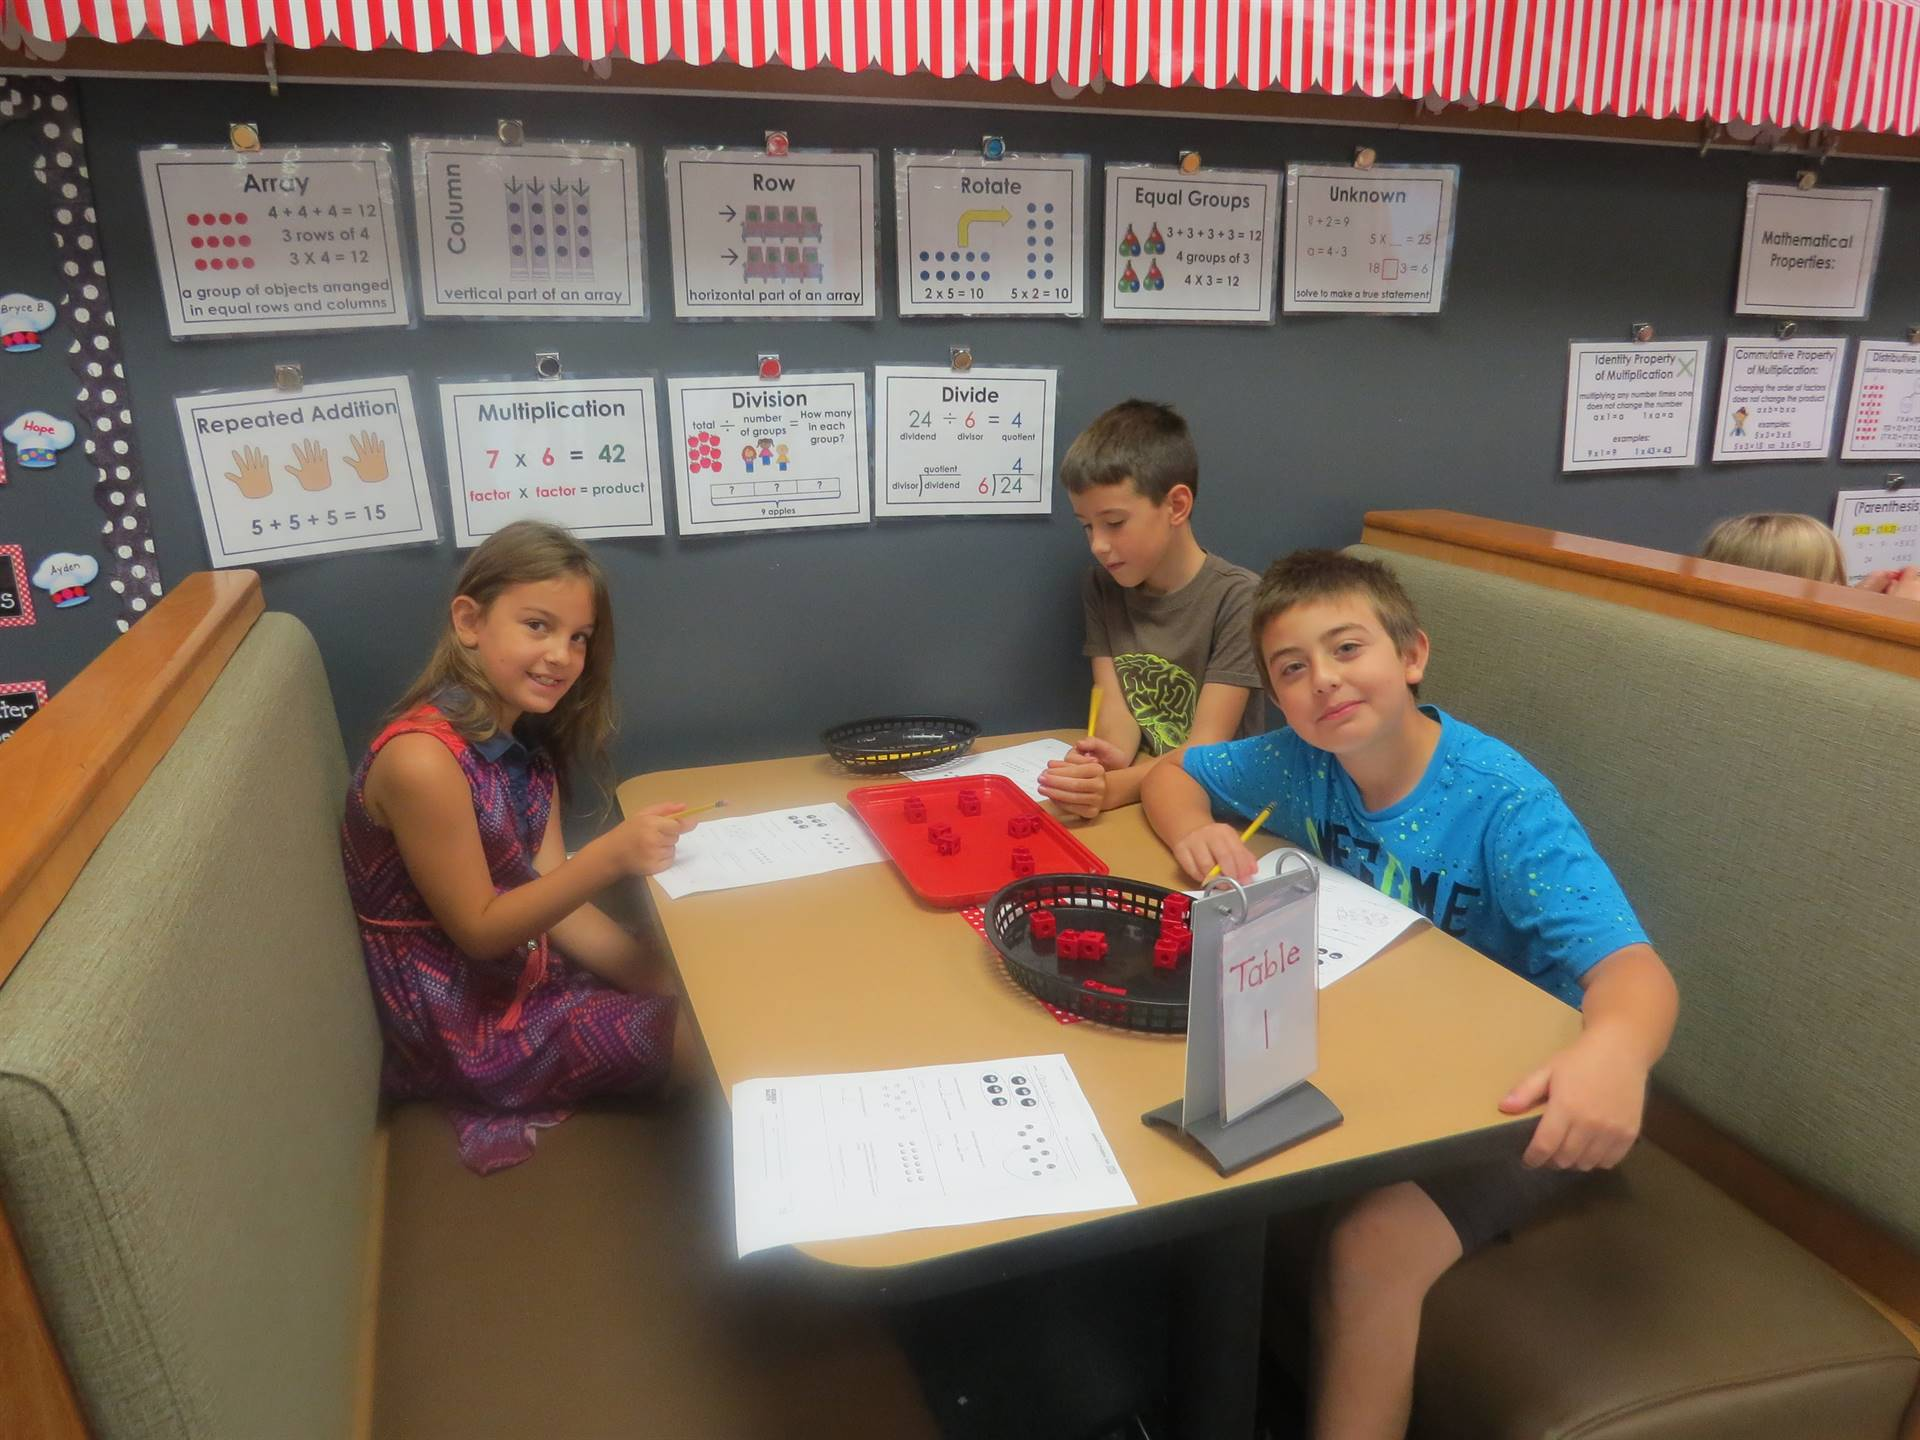 3rd graders sitting in classroom booth working on math papers